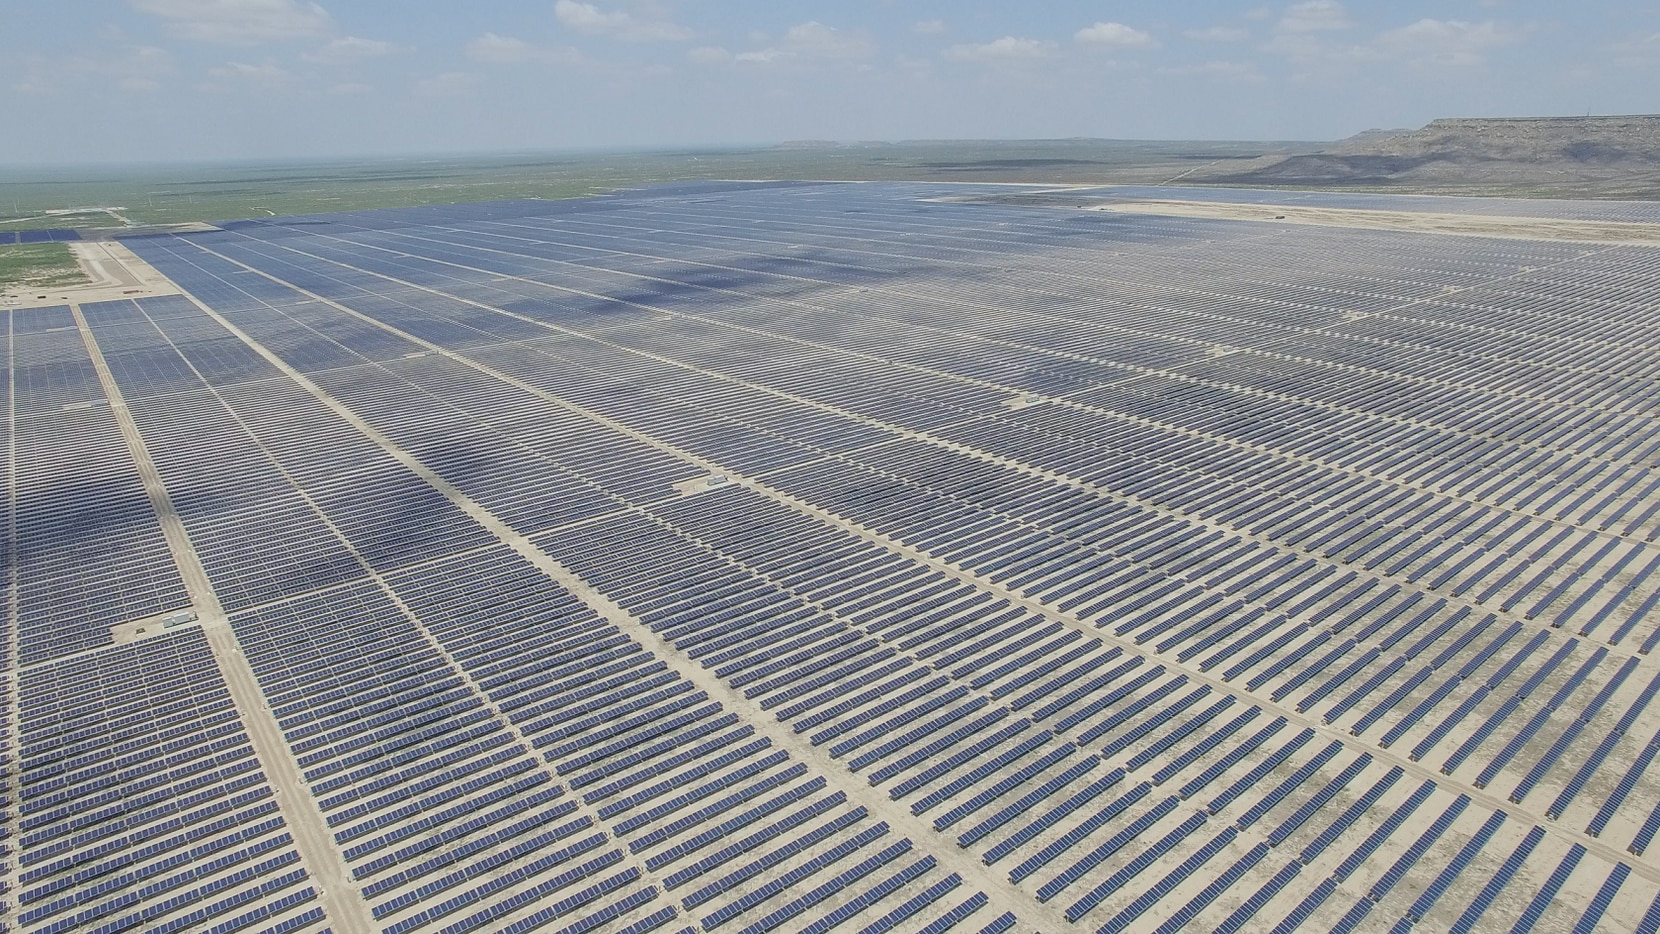 Luminant's Upton 2 solar plant near the West Texas town of McCamey in Upton County. The company received a $1 million state grant to help build a 10 megawatt battery at Upton 2. That will help boost production at the solar plant.